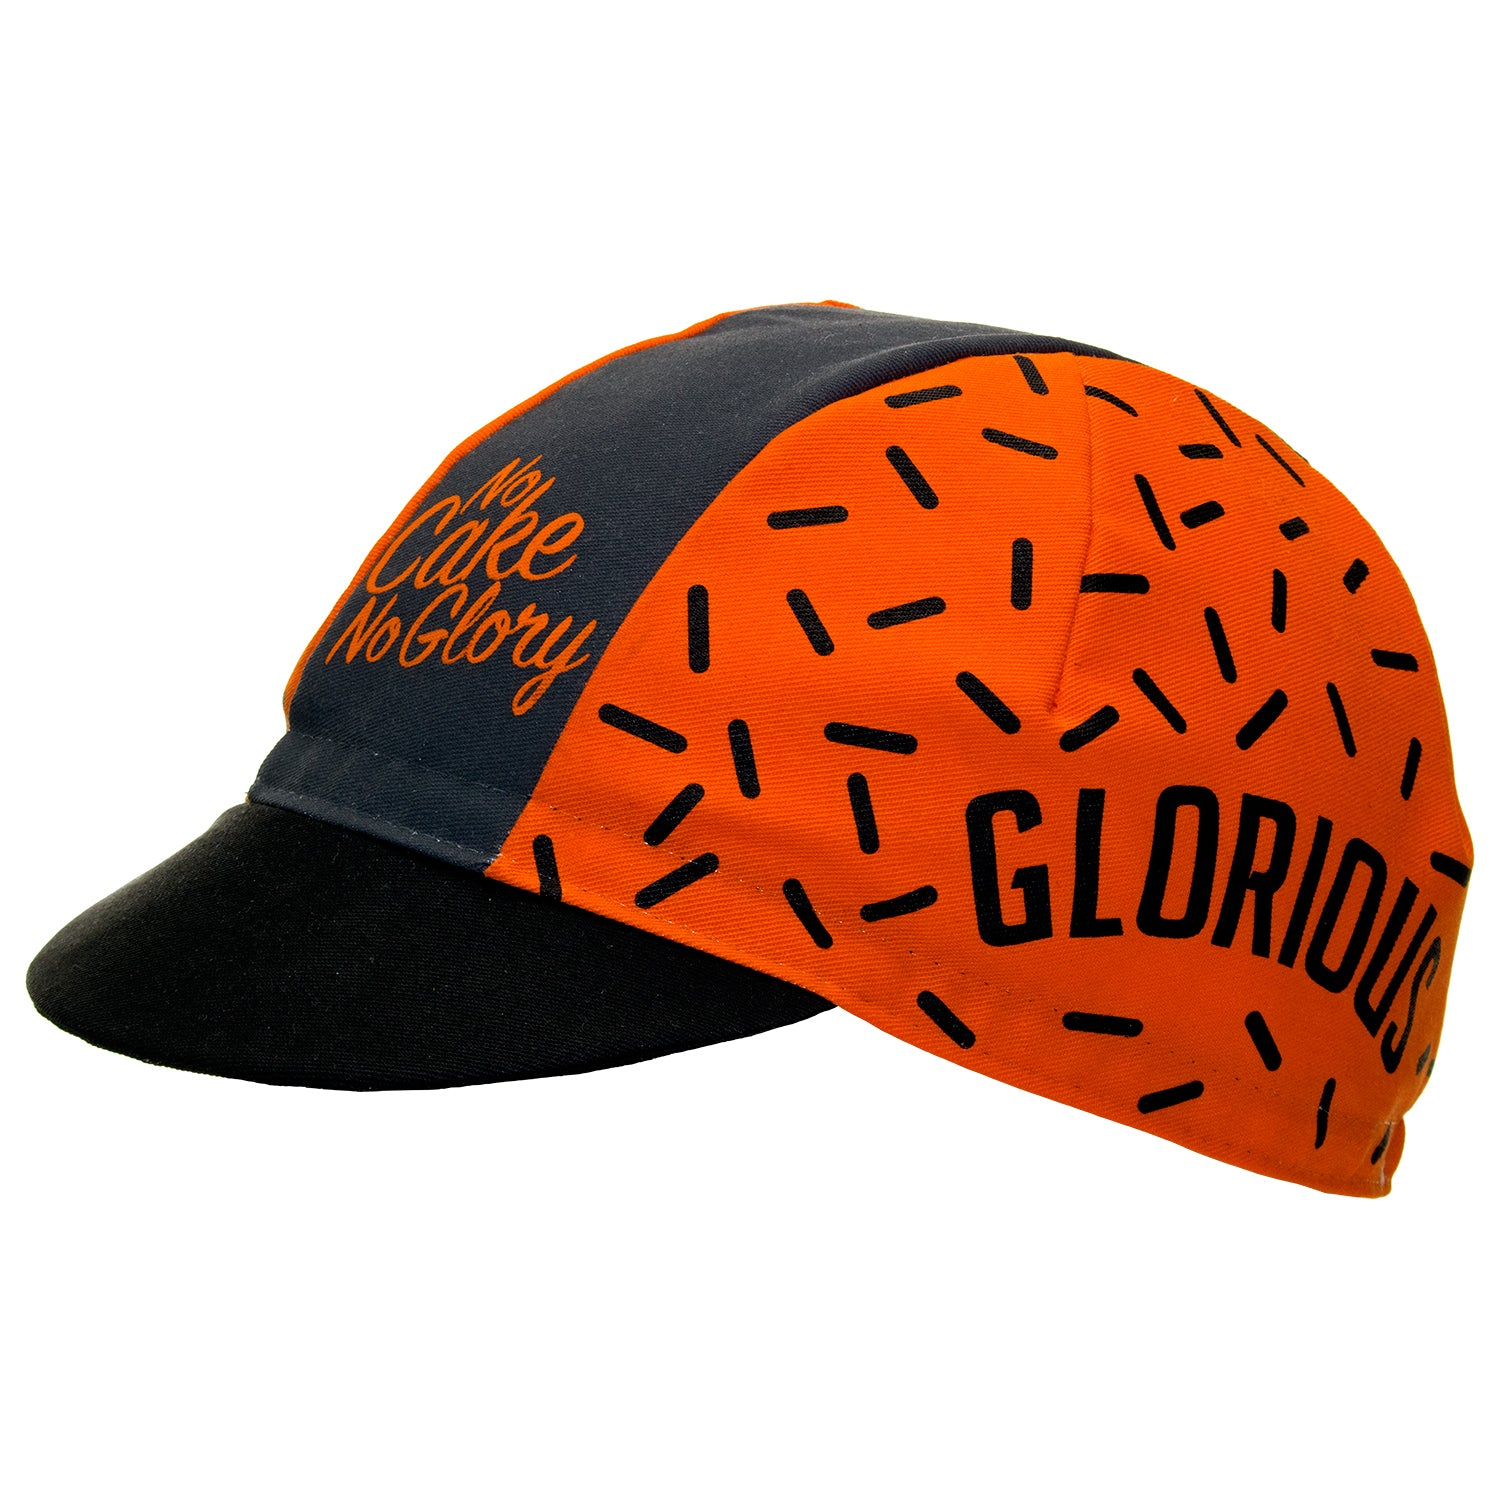 Glorious X Prendas Sprinkles Cotton Cycling Cap